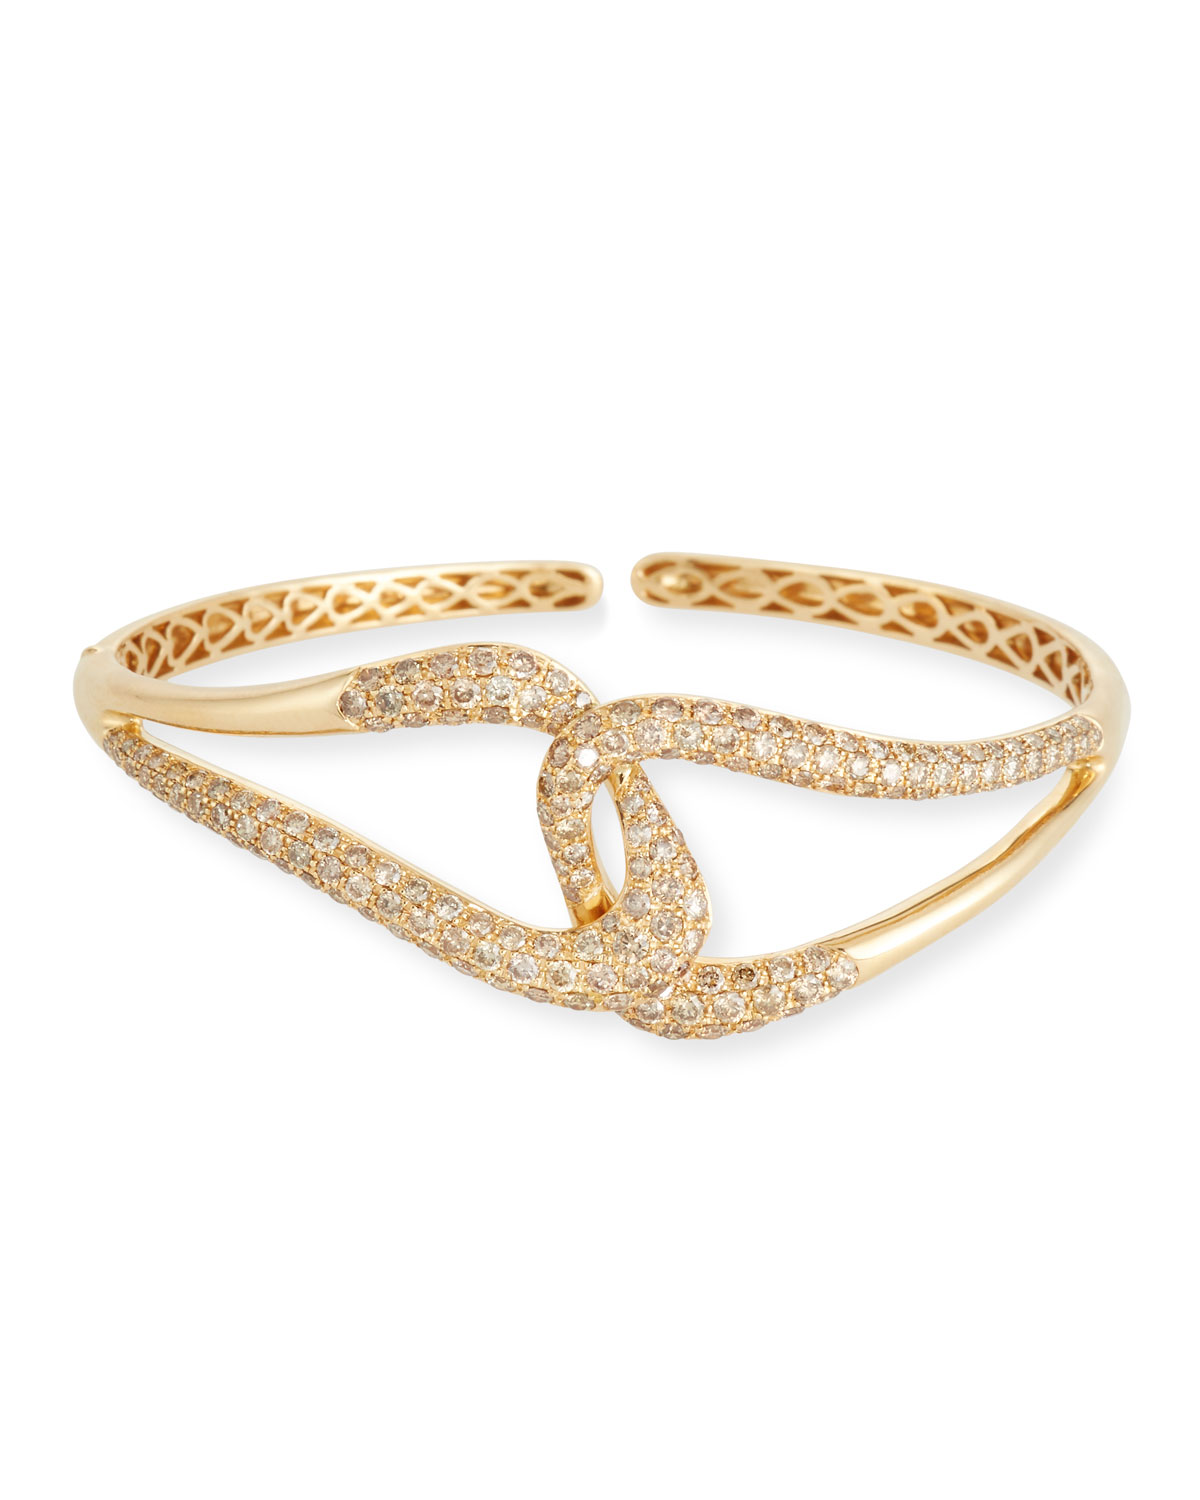 18k Gold Brown Diamond Link Bracelet